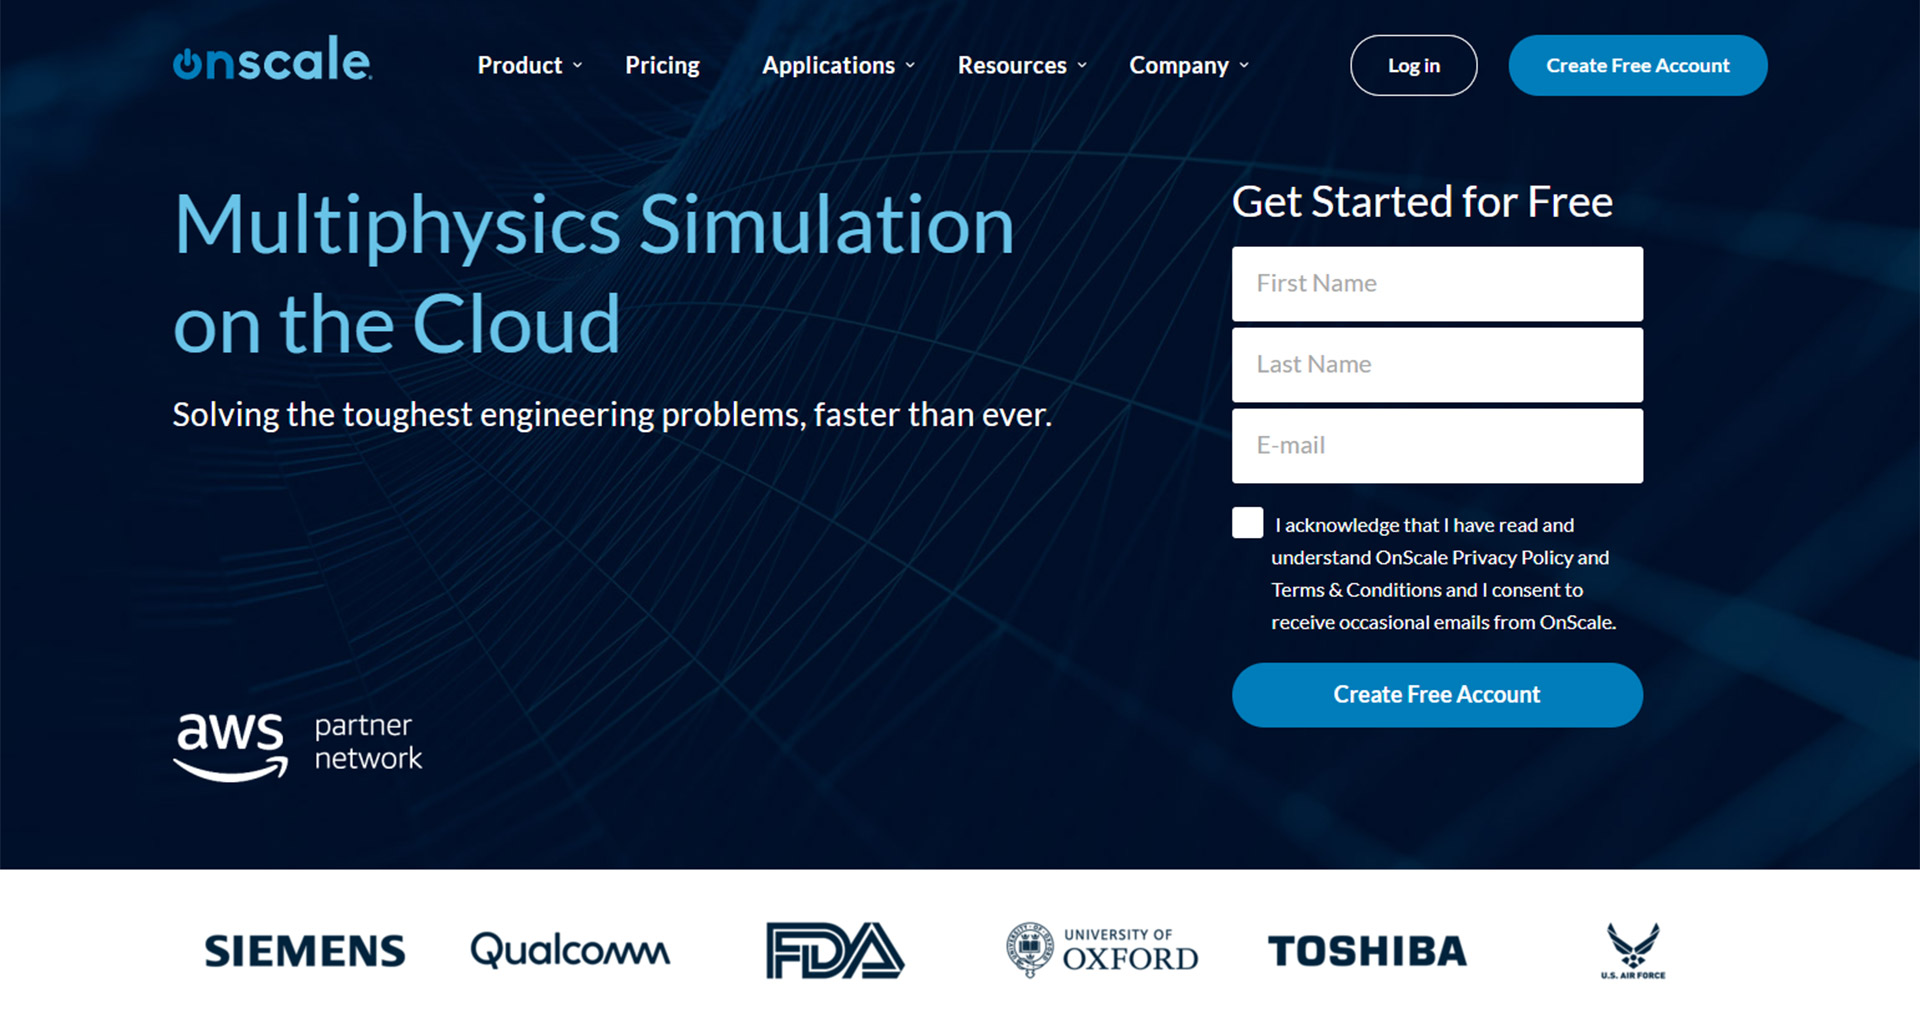 OnScale Cloud FEA | Multiphysics Simulation Software